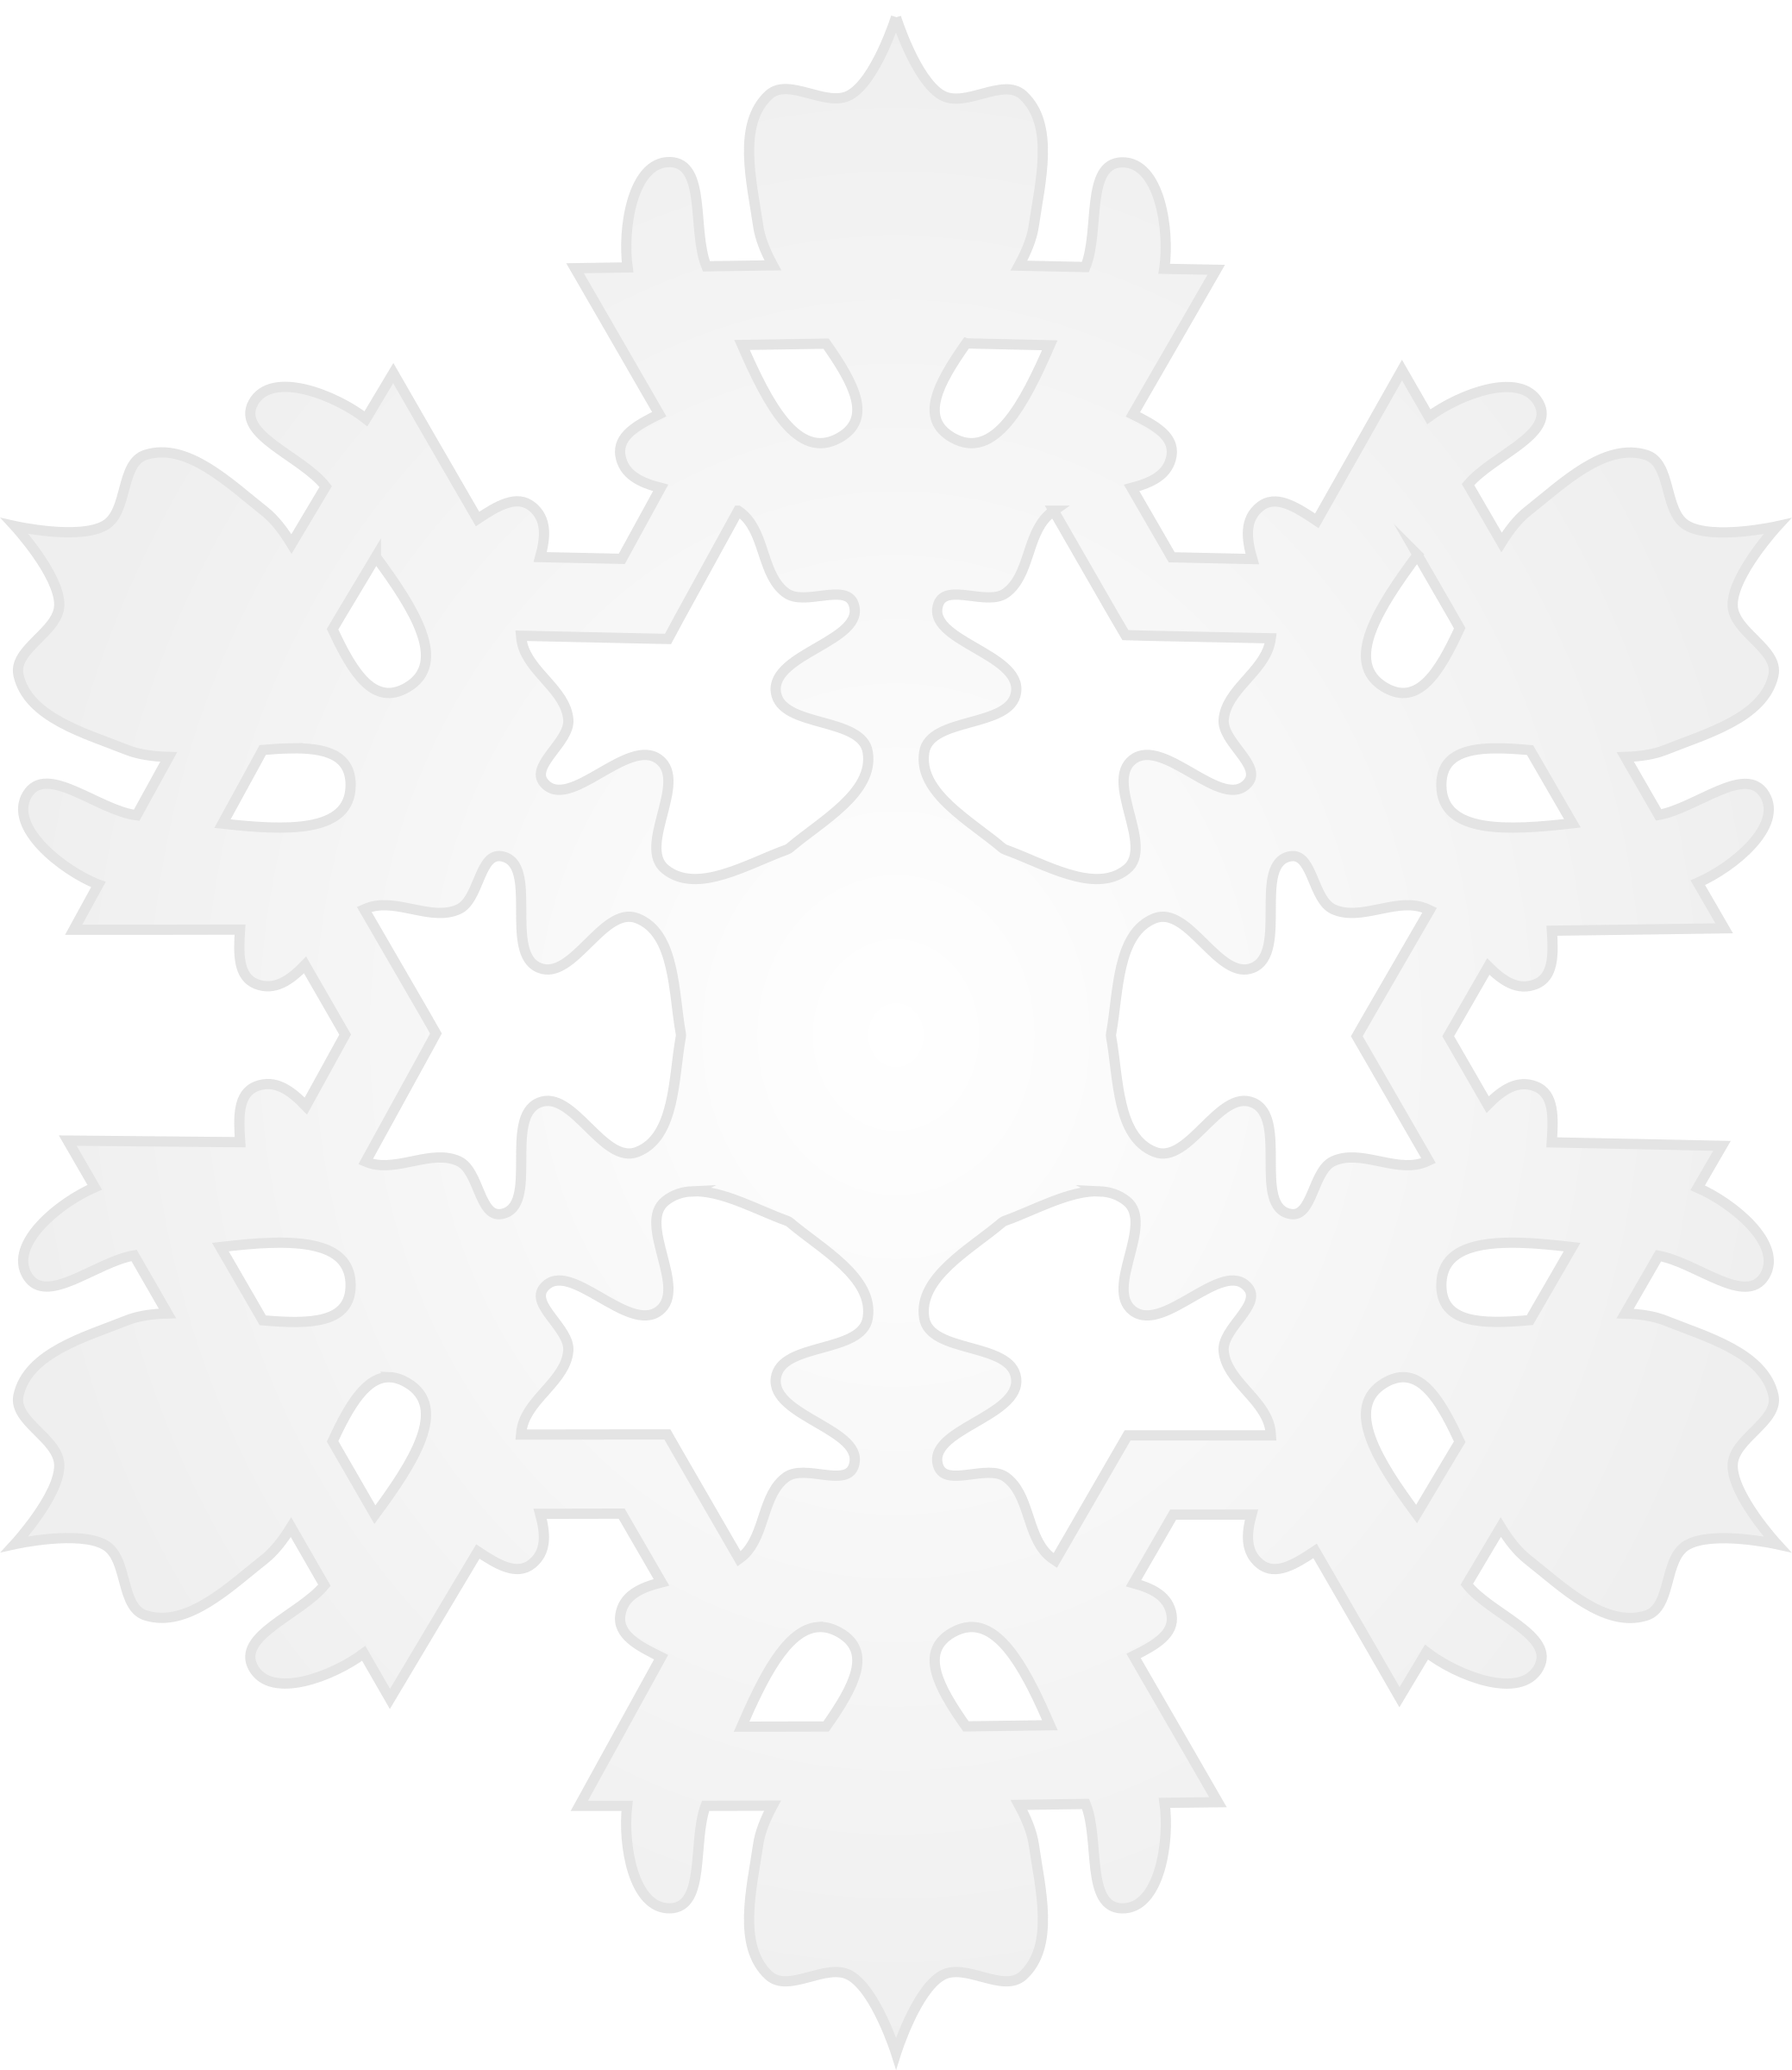 Clipart - Snowflake 5 image transparent stock